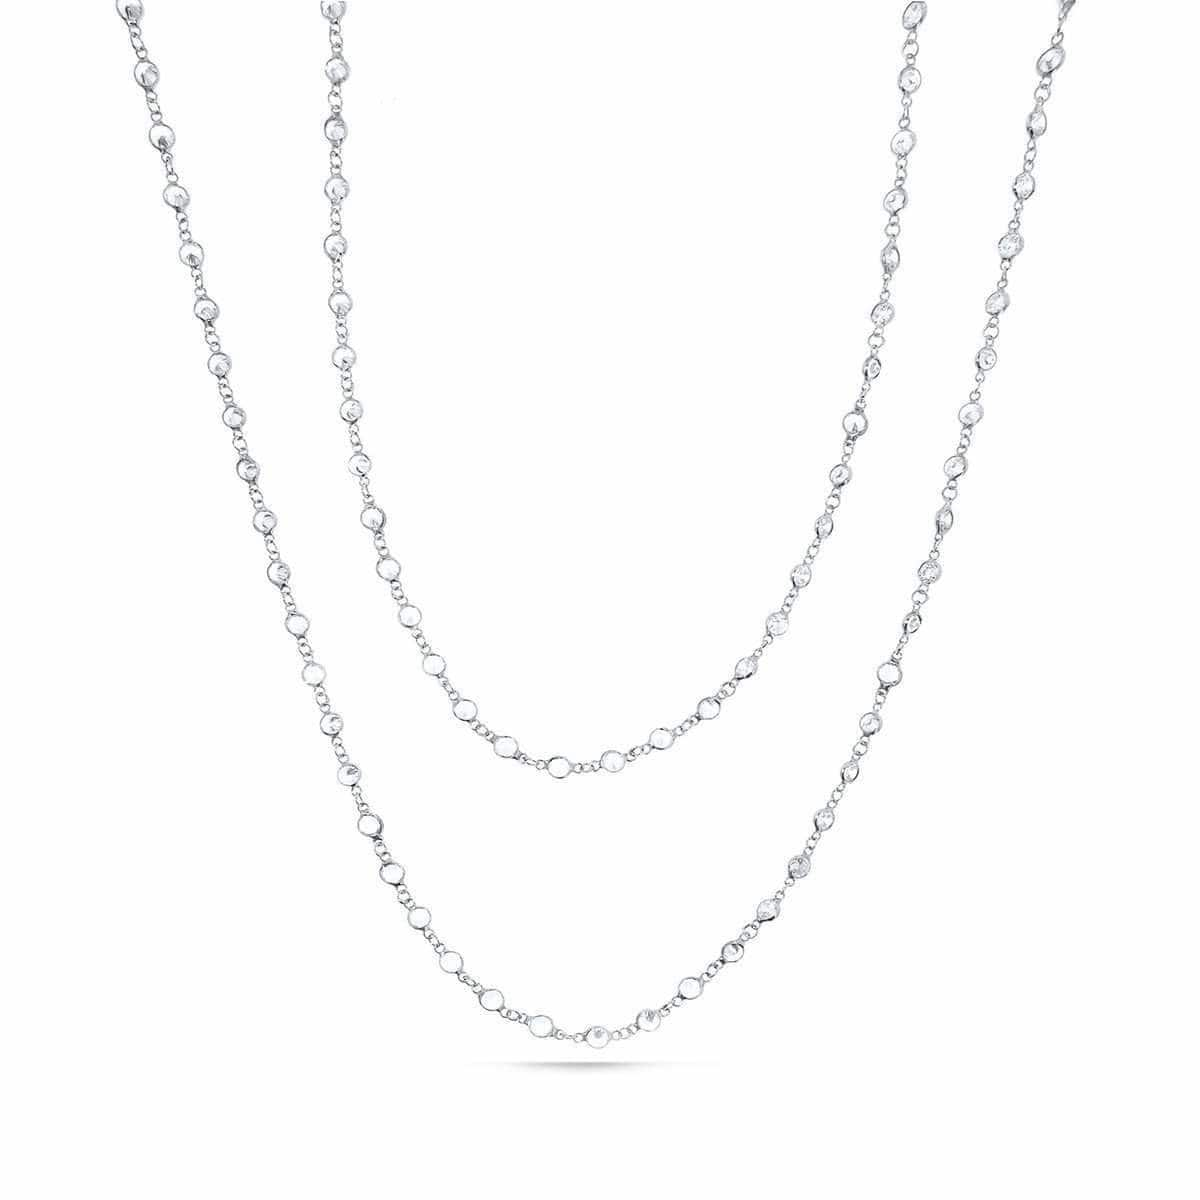 Rhodium Plated Swarovski Long Necklace With 3.5mm Crystals